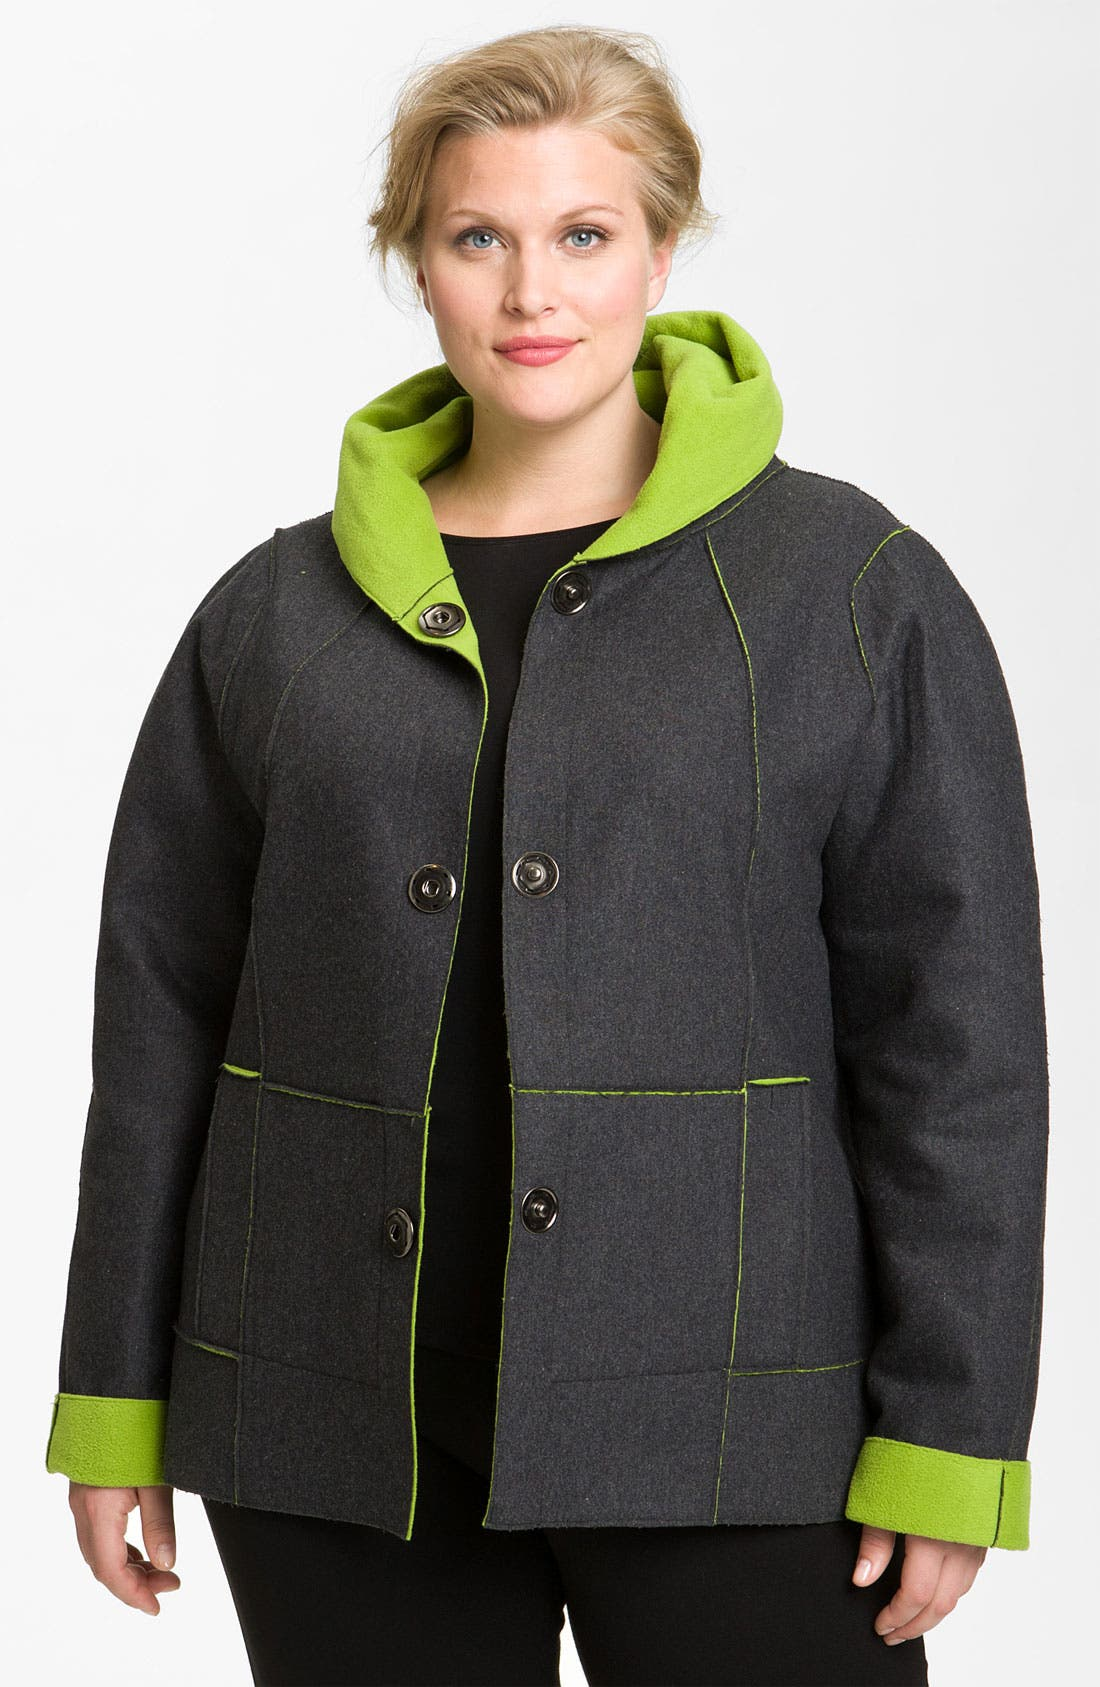 Alternate Image 1 Selected - Kristen Blake Reversible Bonded Fleece Jacket (Plus)